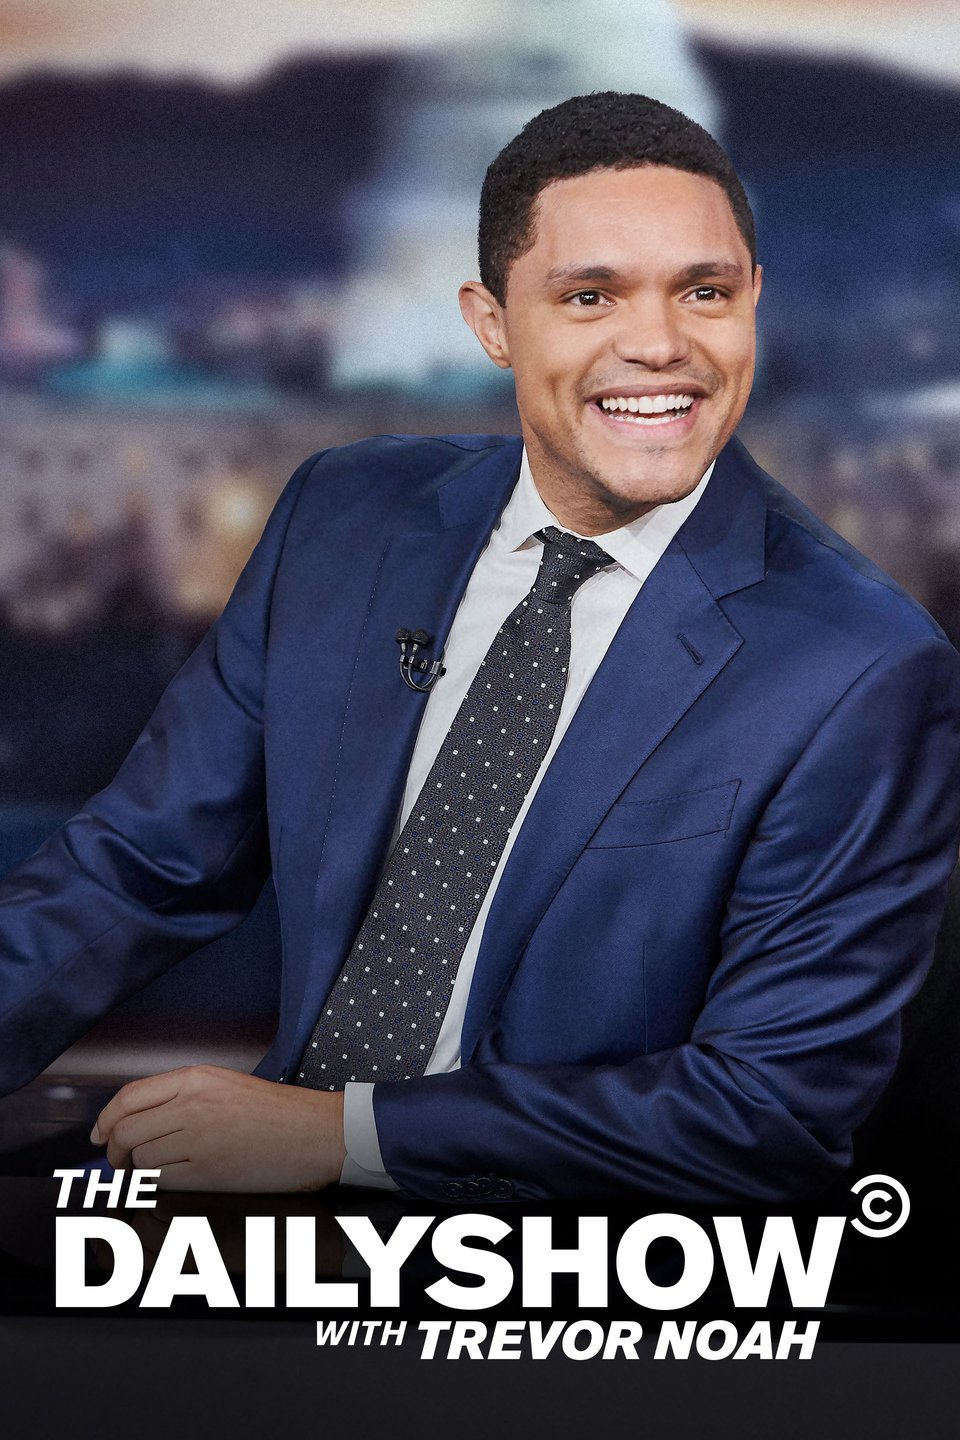 The.Daily.Show.2019.11.18.Tom.Steyer.EXTENDED.720p.WEB.x264-TBS